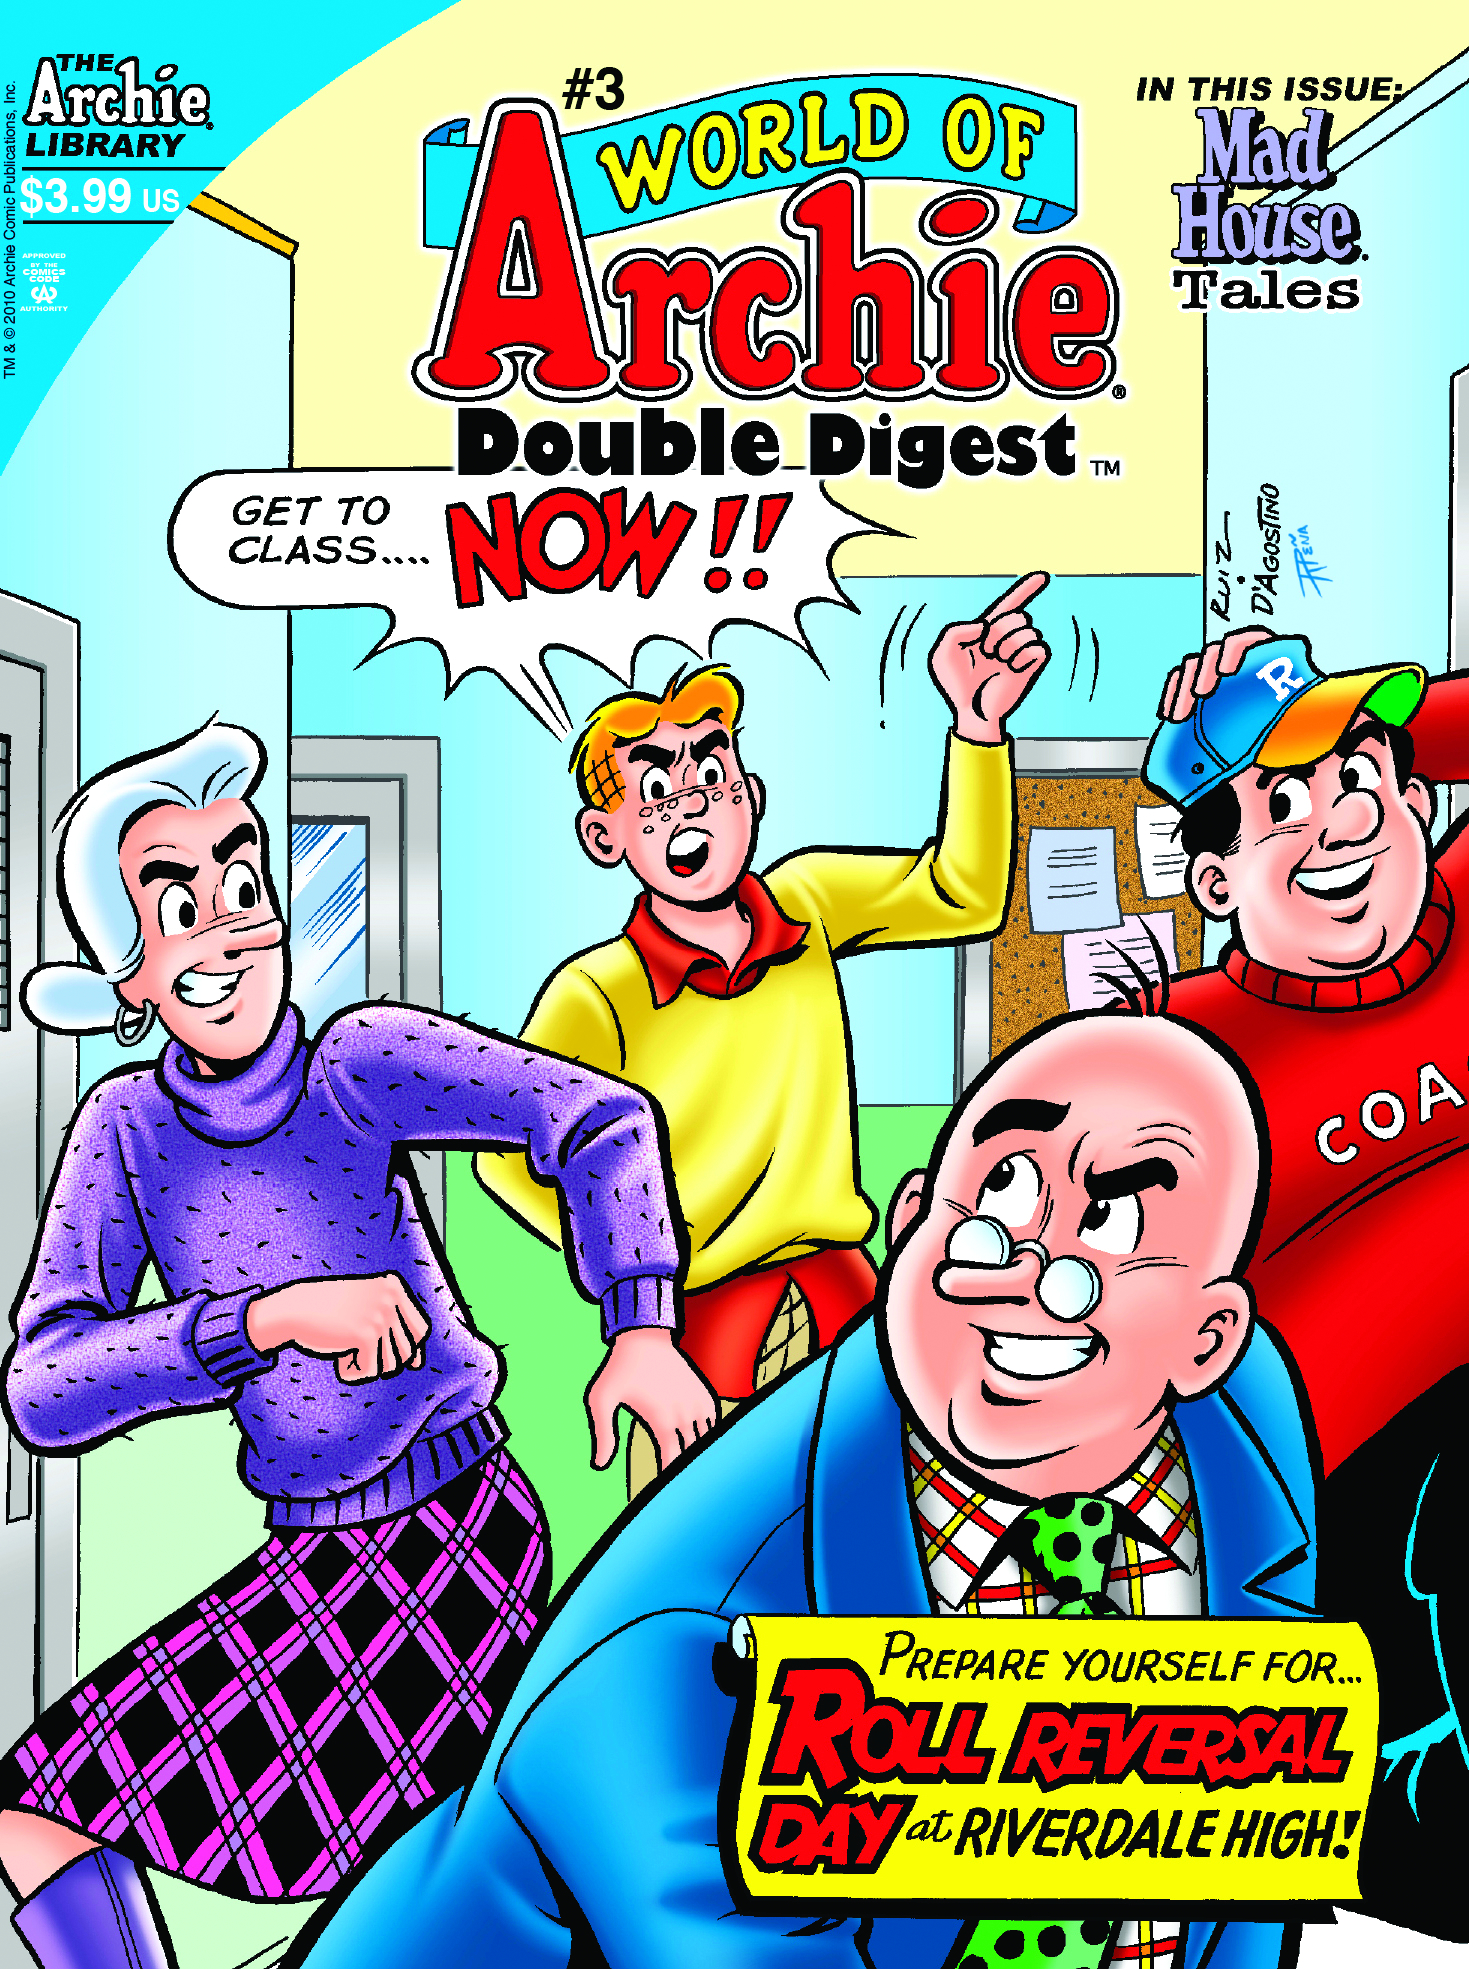 WORLD OF ARCHIE DOUBLE DIGEST #3